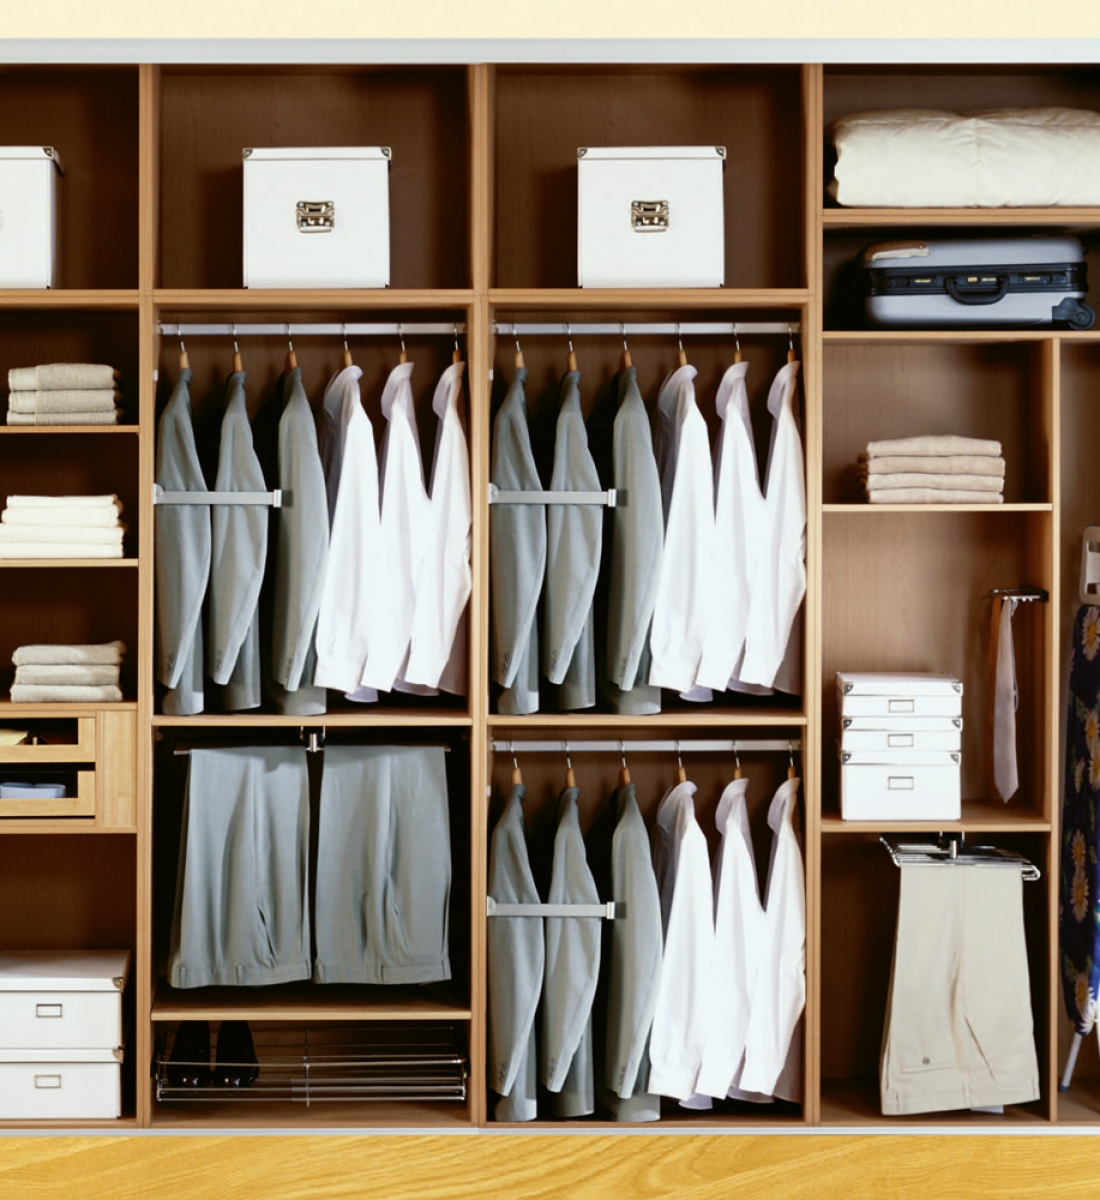 Vestidores fotos nuevos walkin closet idea in madrid - Armario persiana cocina ...